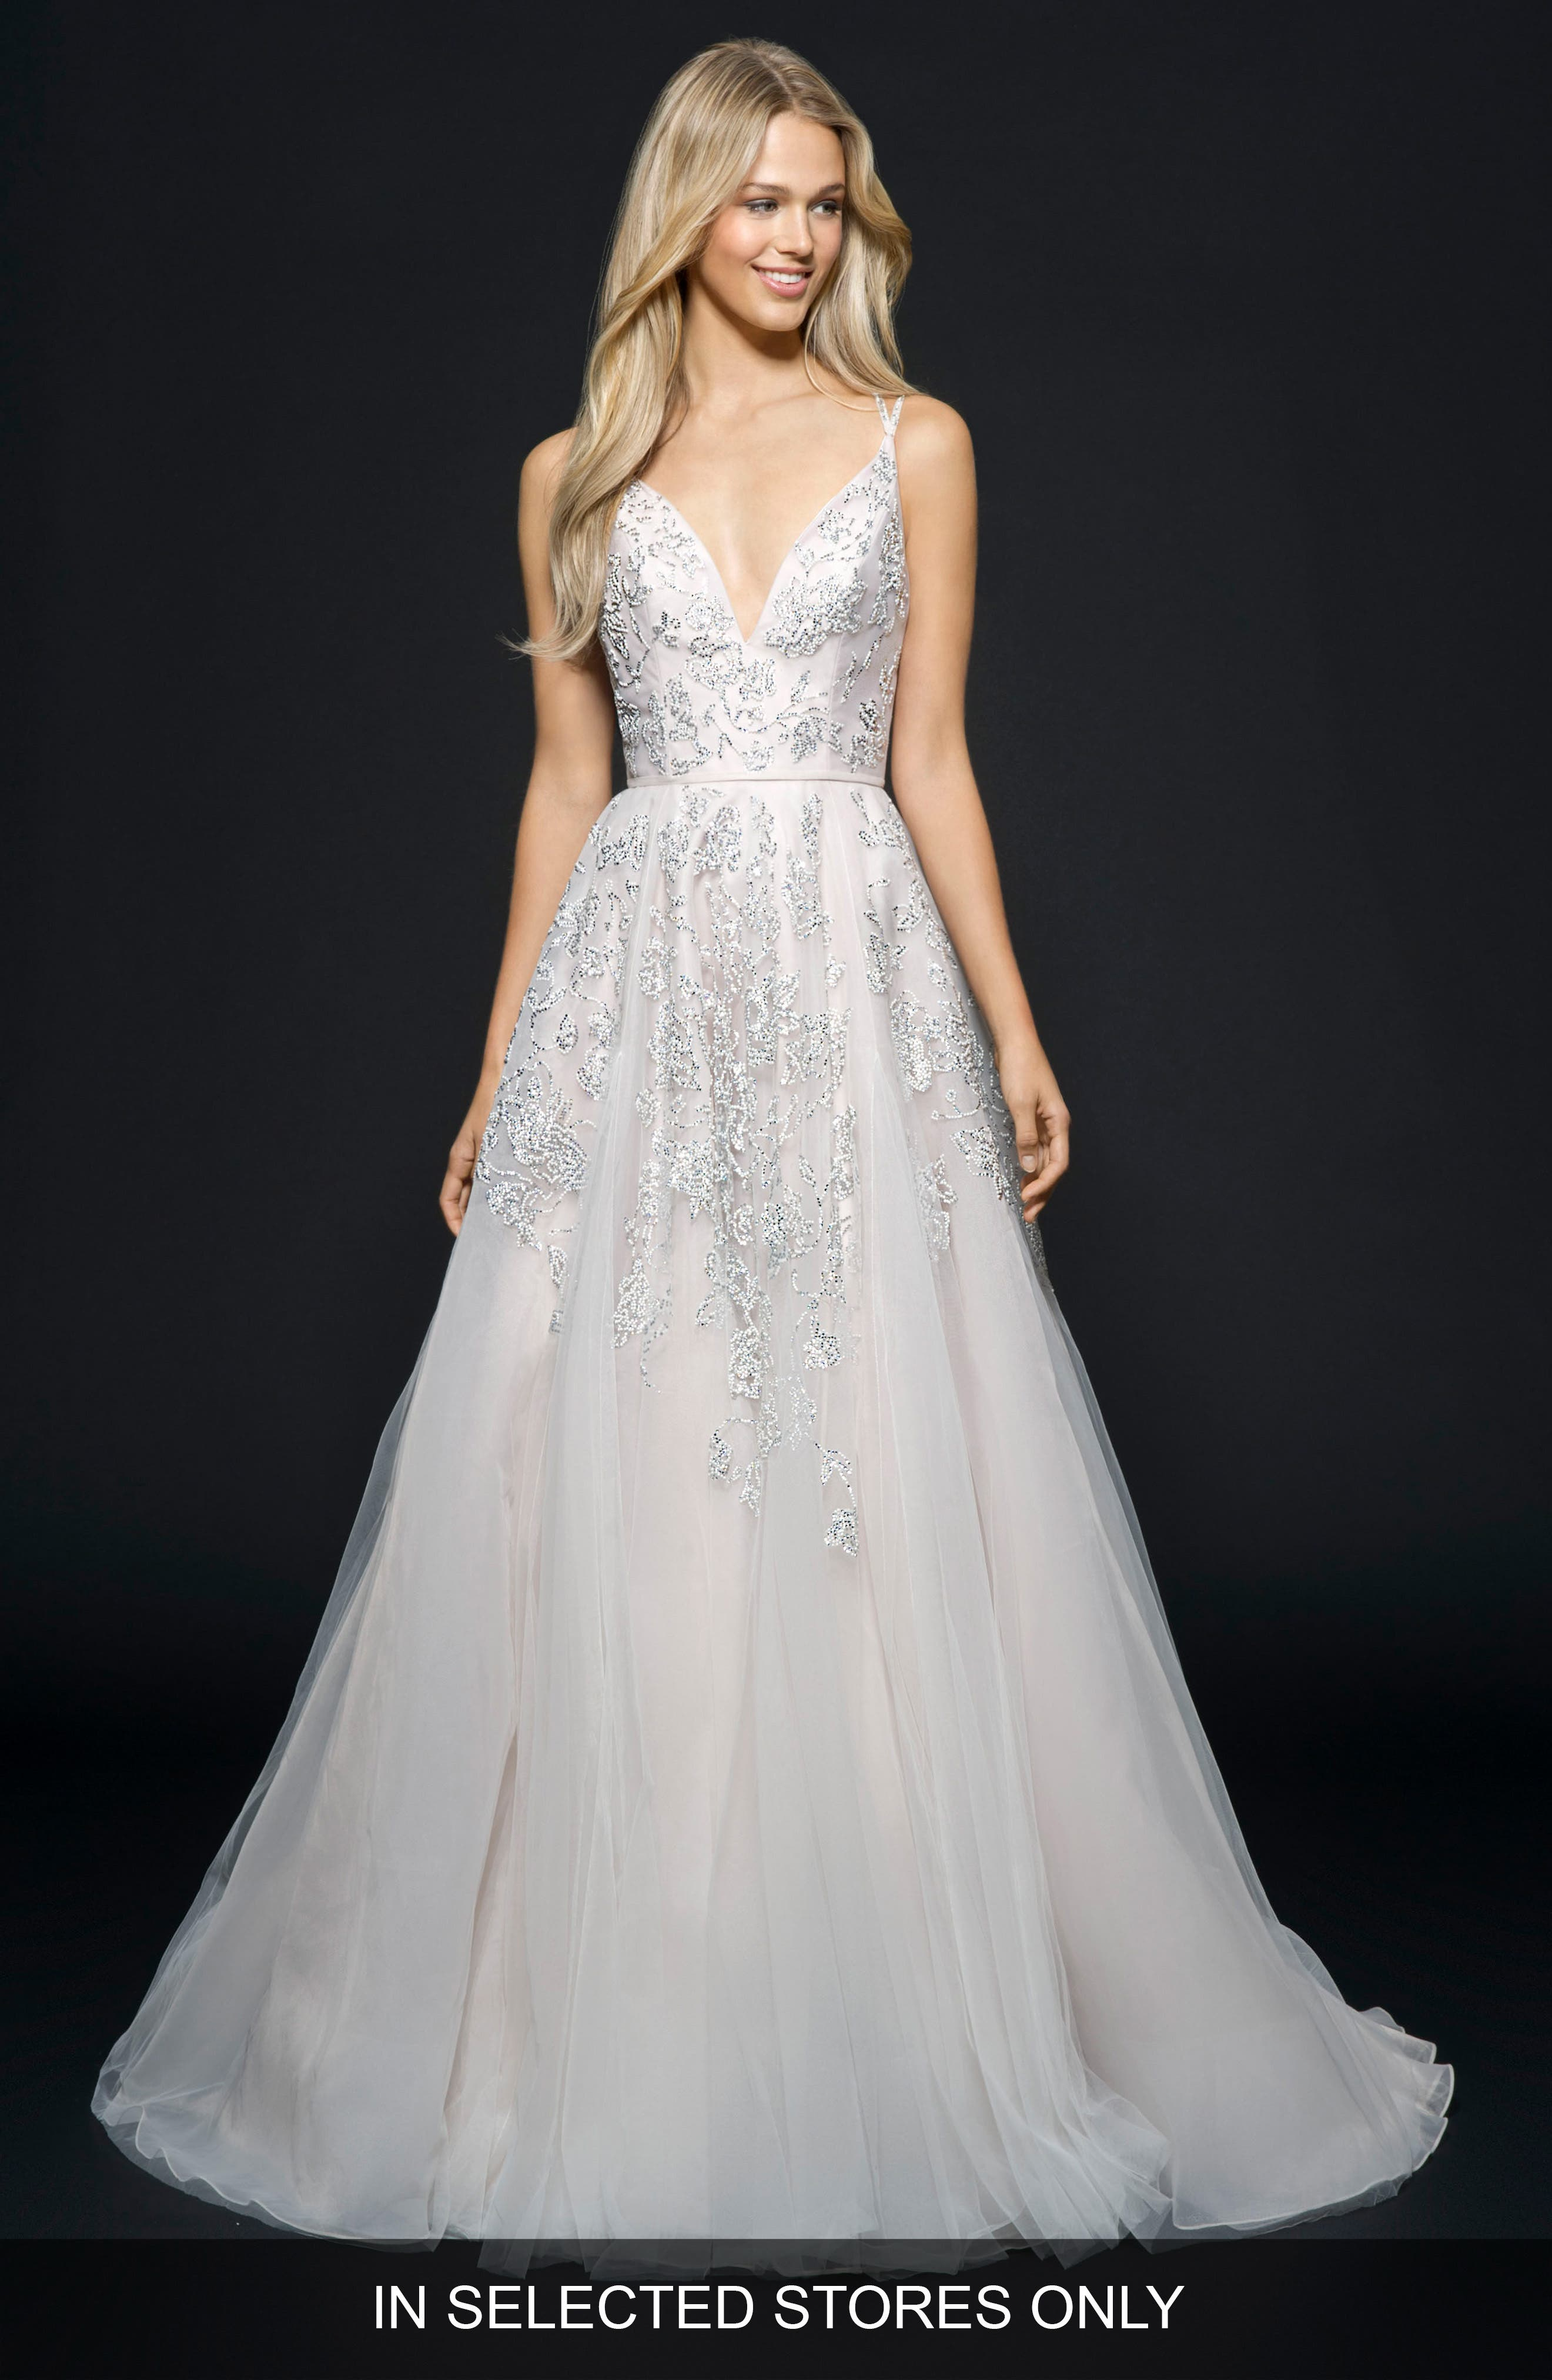 Marni Tulle Ballgown,                             Main thumbnail 1, color,                             Alabaster